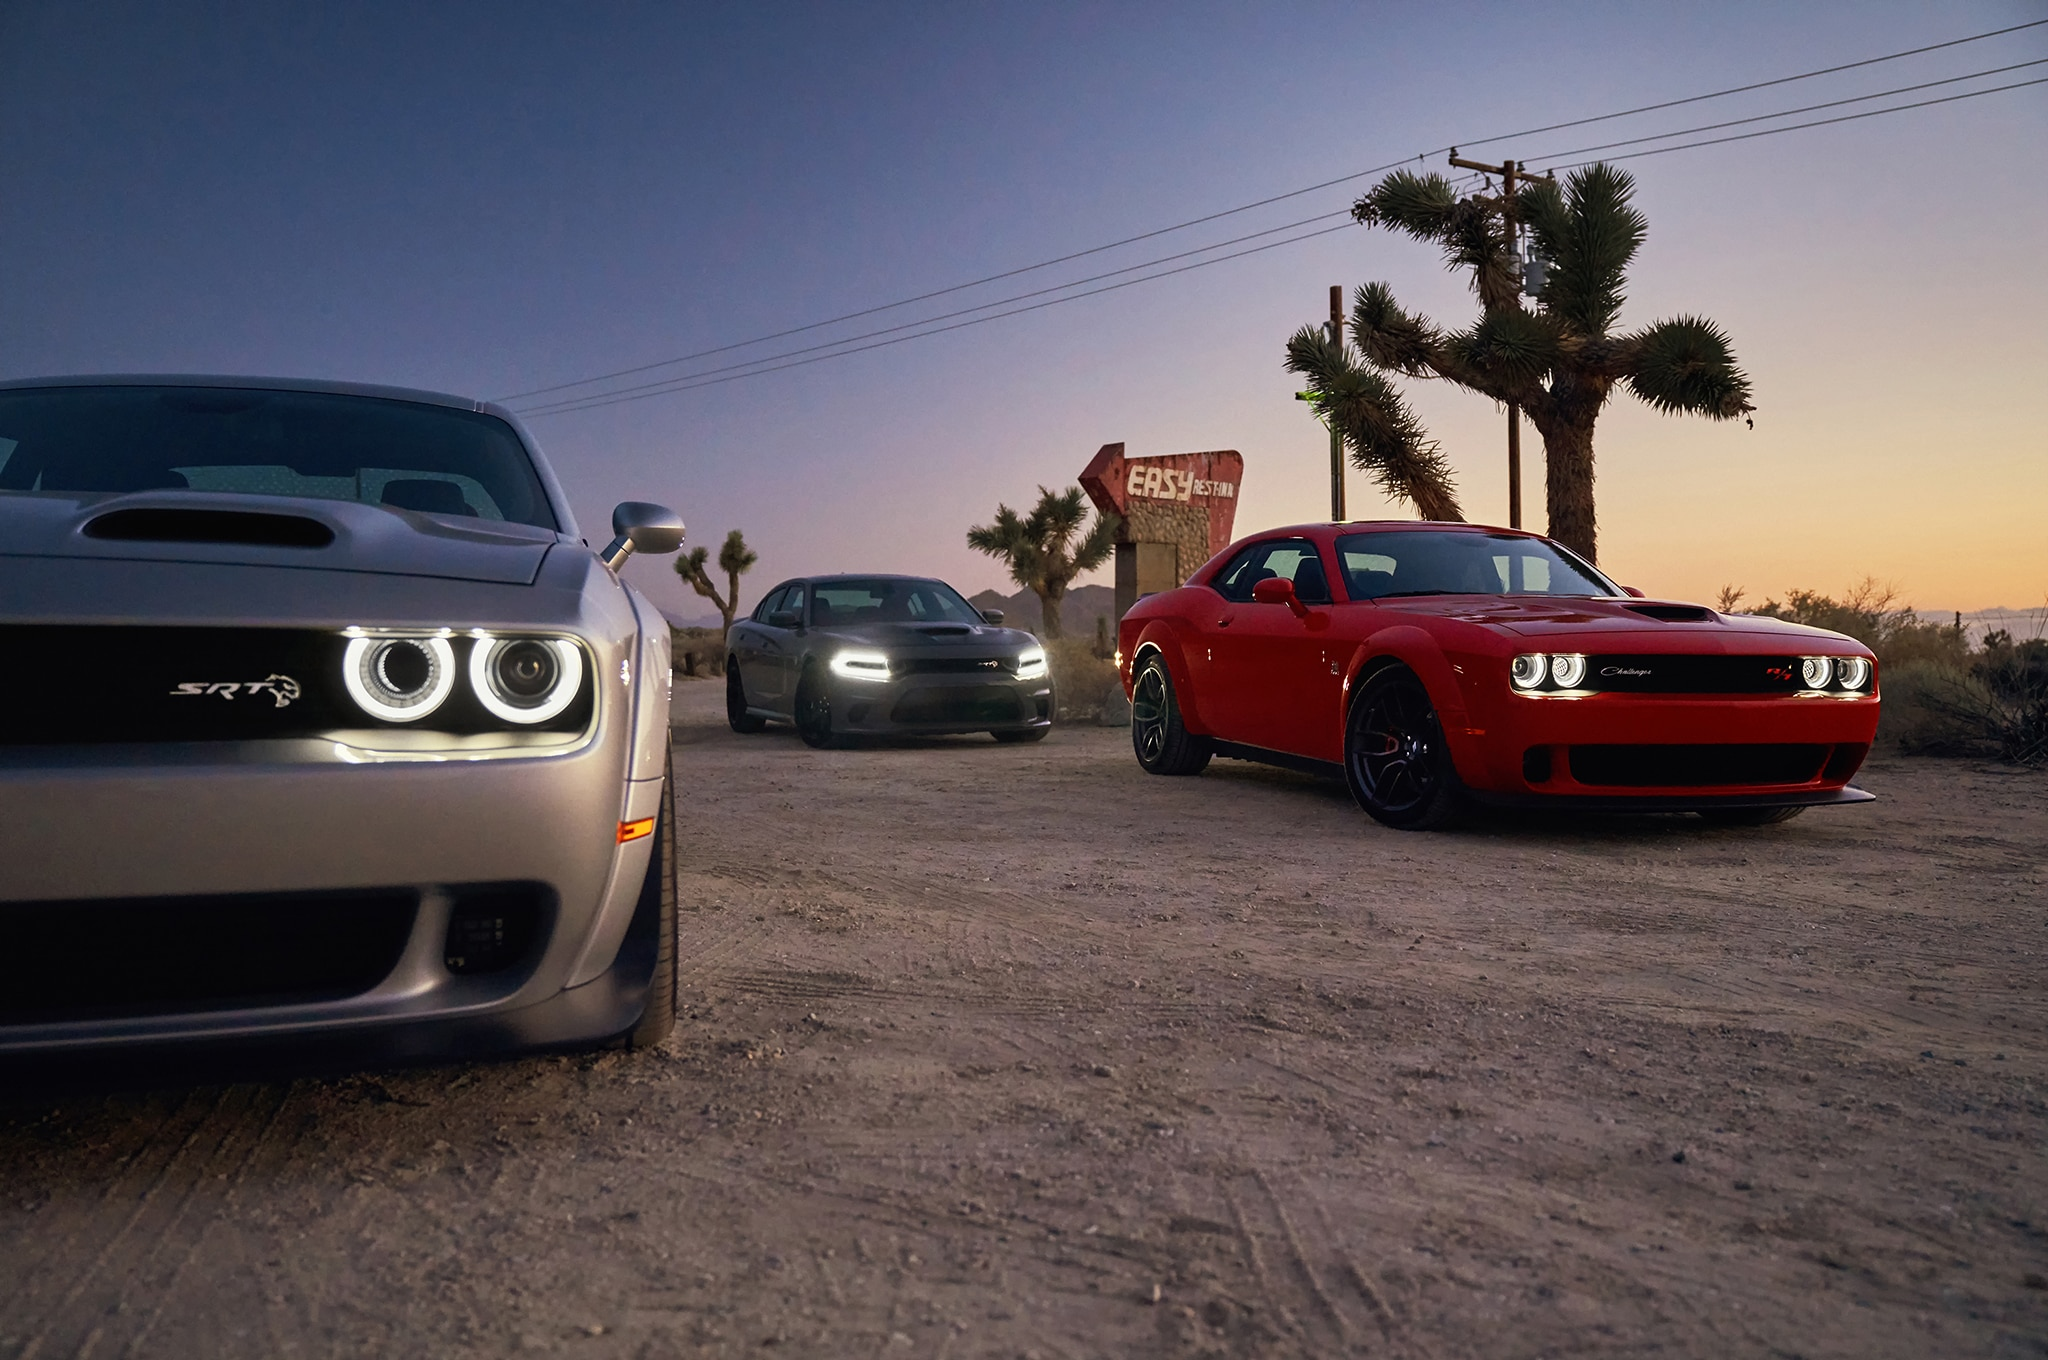 2019 Dodge Challenger Srt Hellcat Redeye Serves Up 797 Horsepower